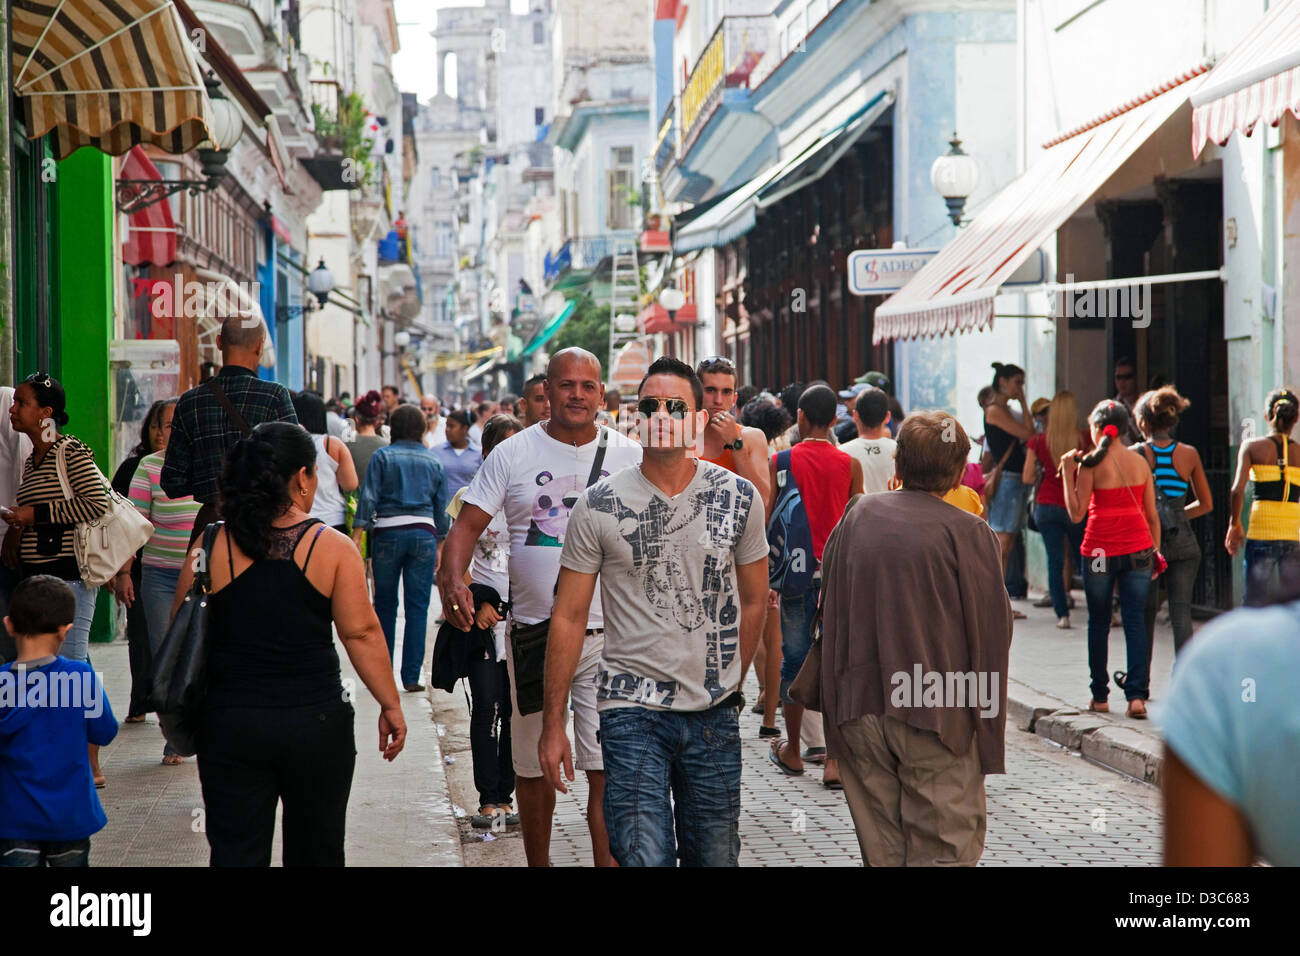 Shoppers and tourists in the Calle Obispo / Bishop Street, the main shopping street in Havana, Cuba, Caribbean - Stock Image